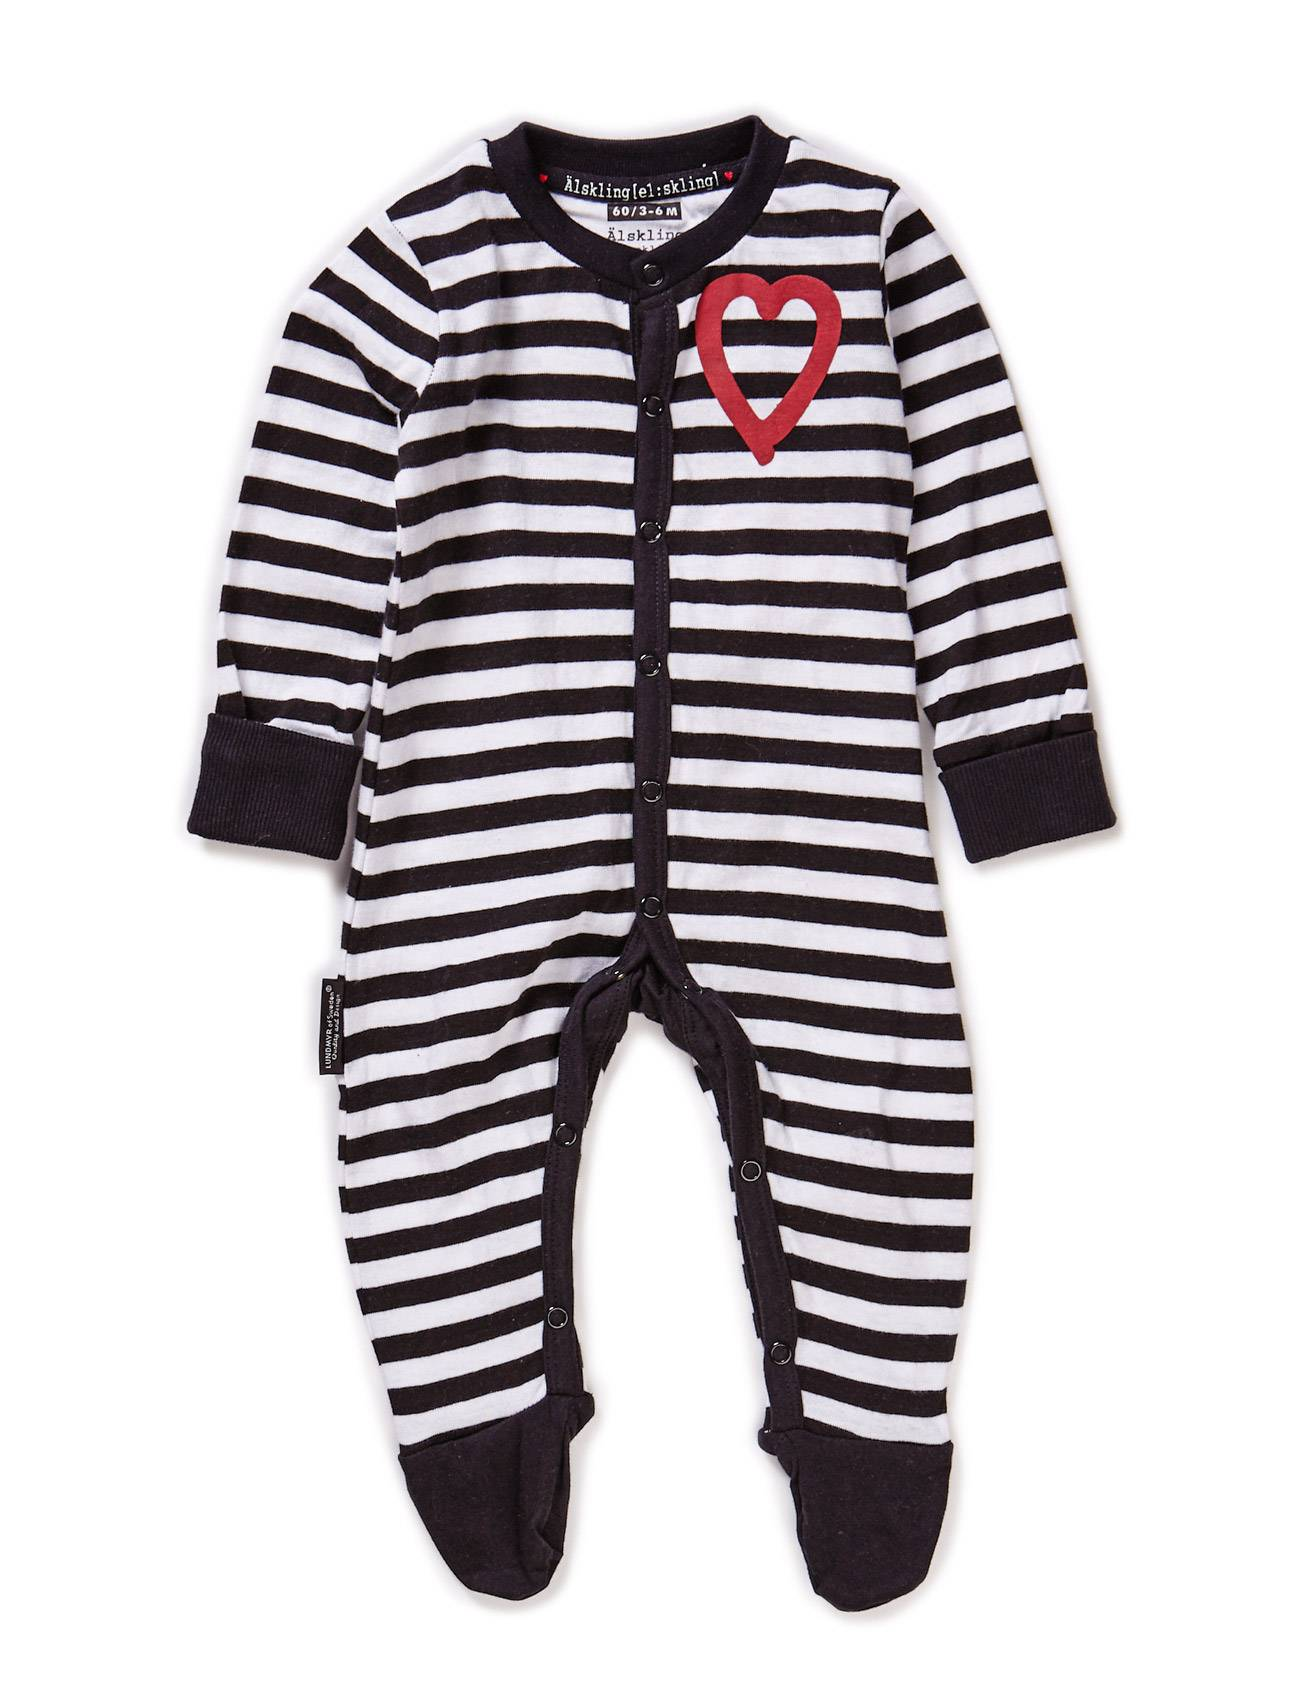 Lundmyr Pyjamas, W Foot, Striped